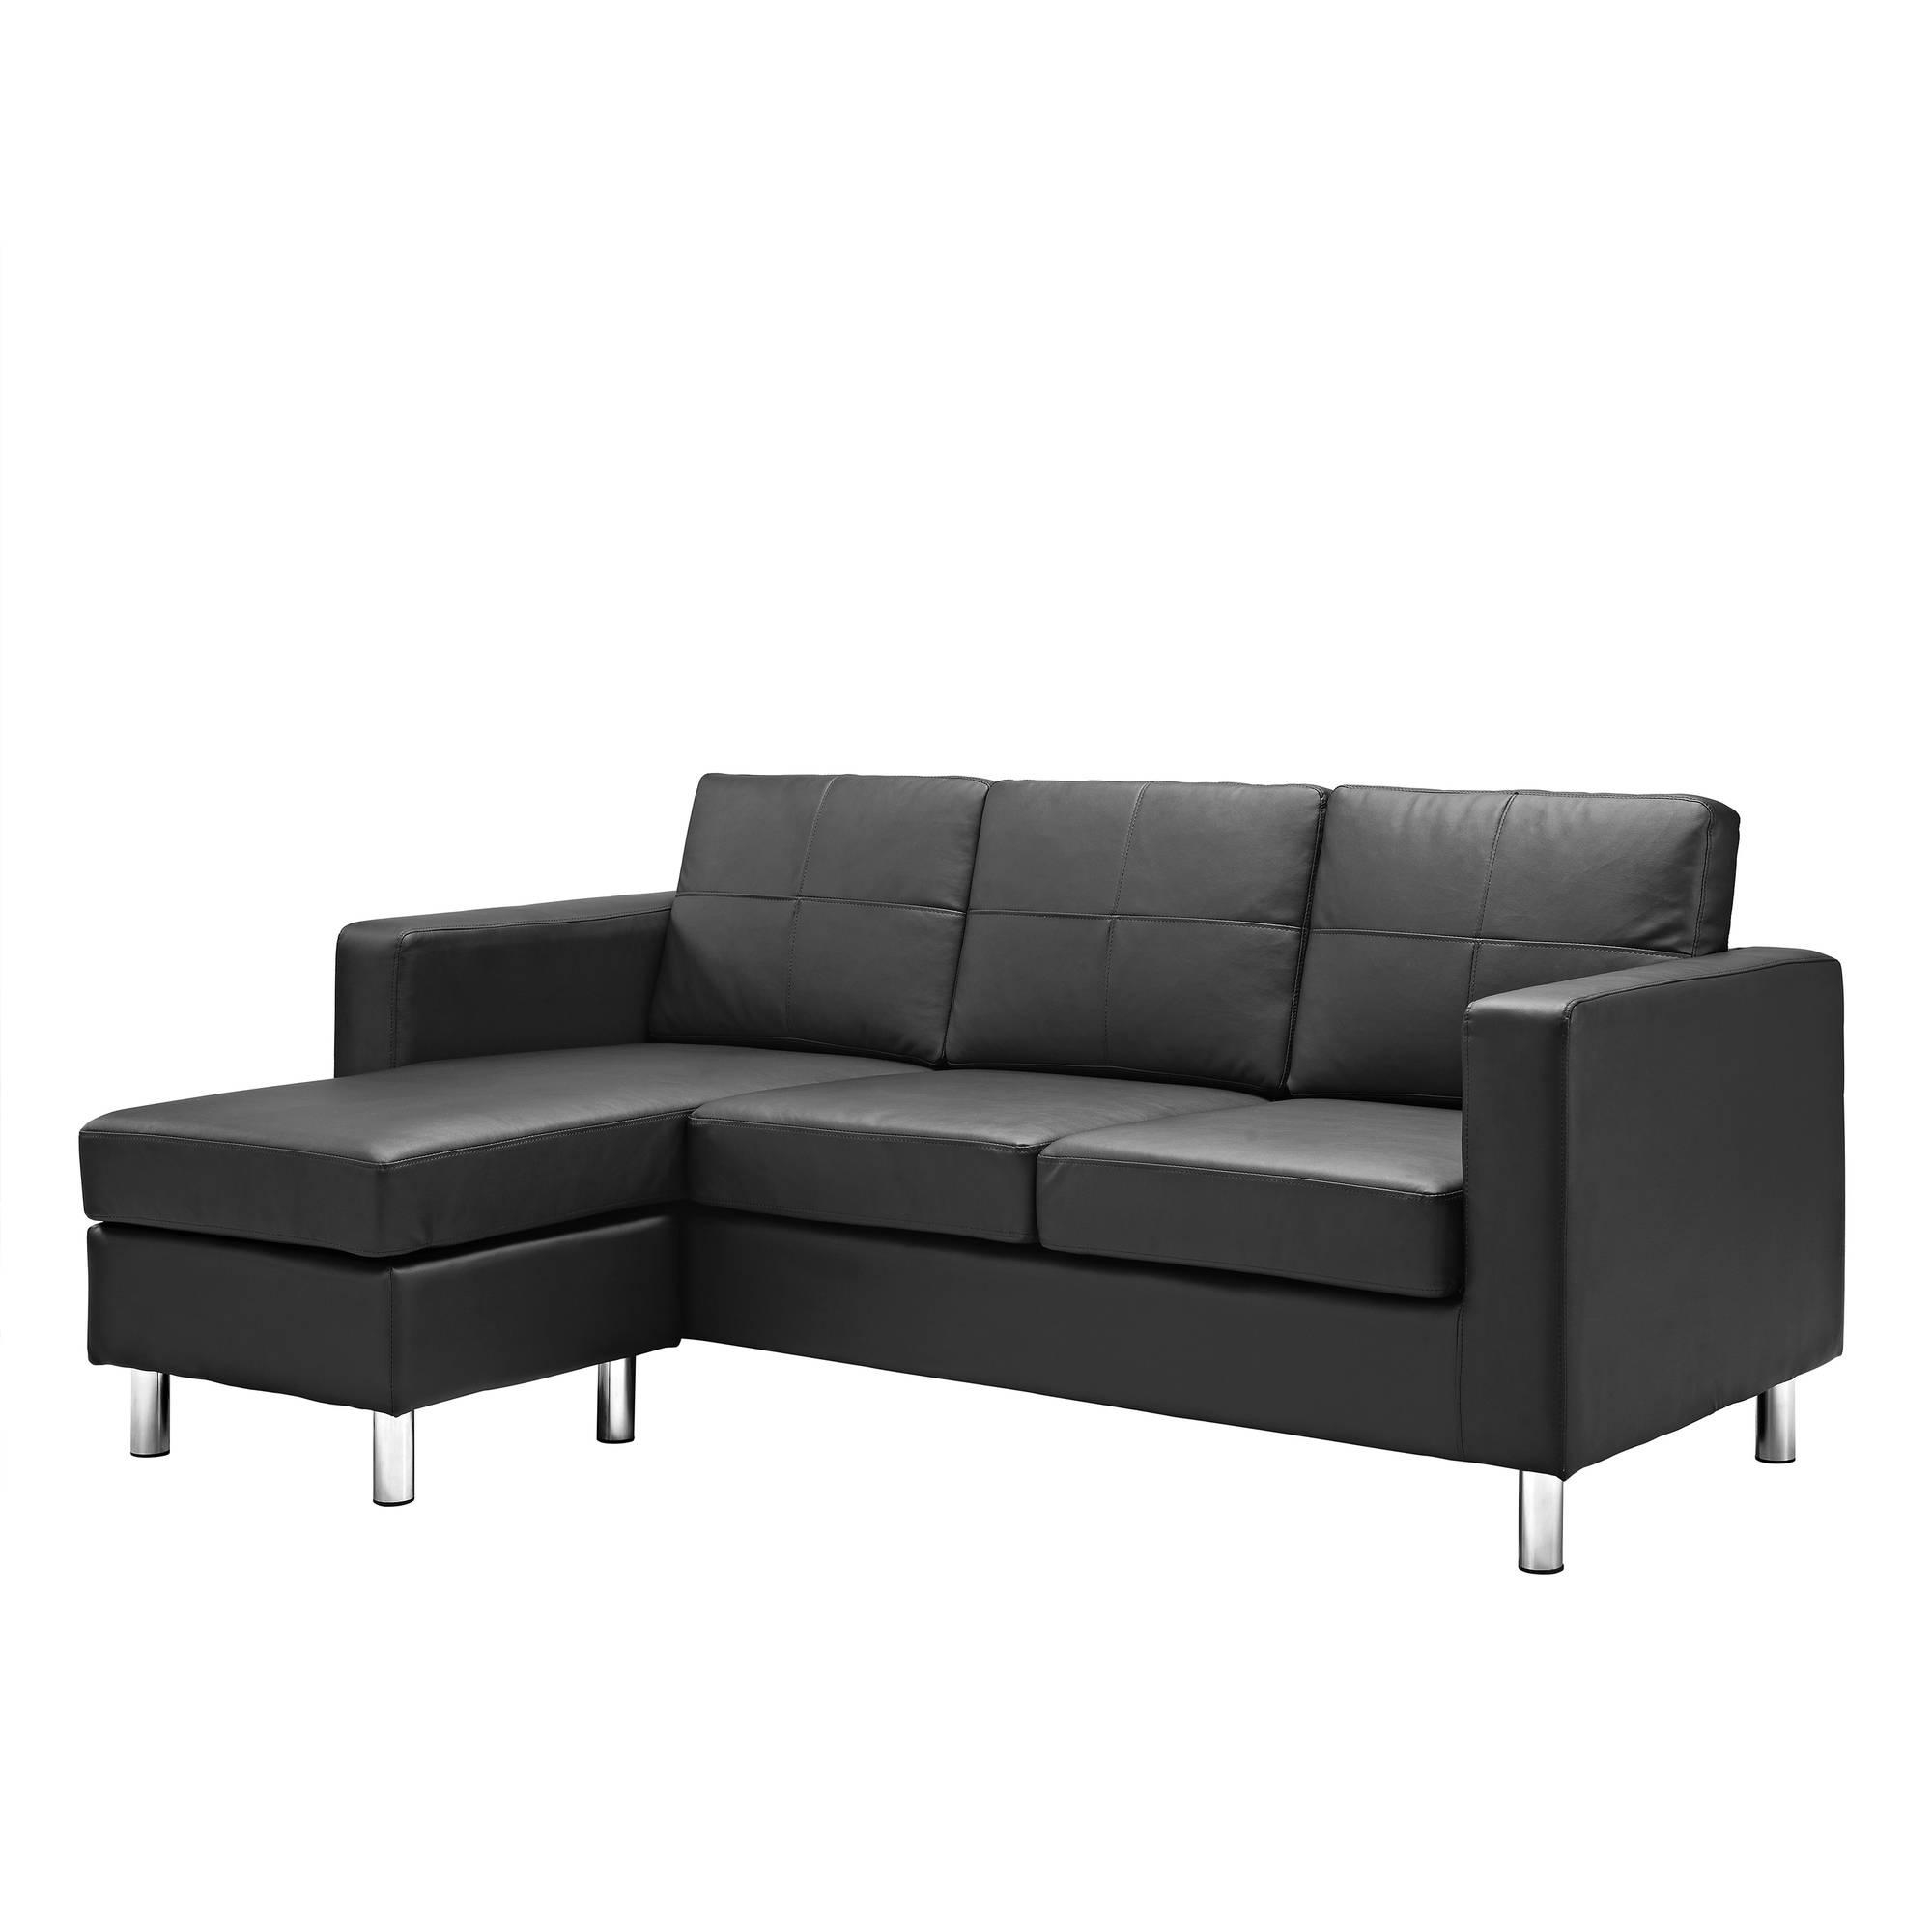 Dorel Living Small Spaces Configurable Sectional Sofa, Multiple Within Small Sectional Sofas For Small Spaces (View 5 of 20)